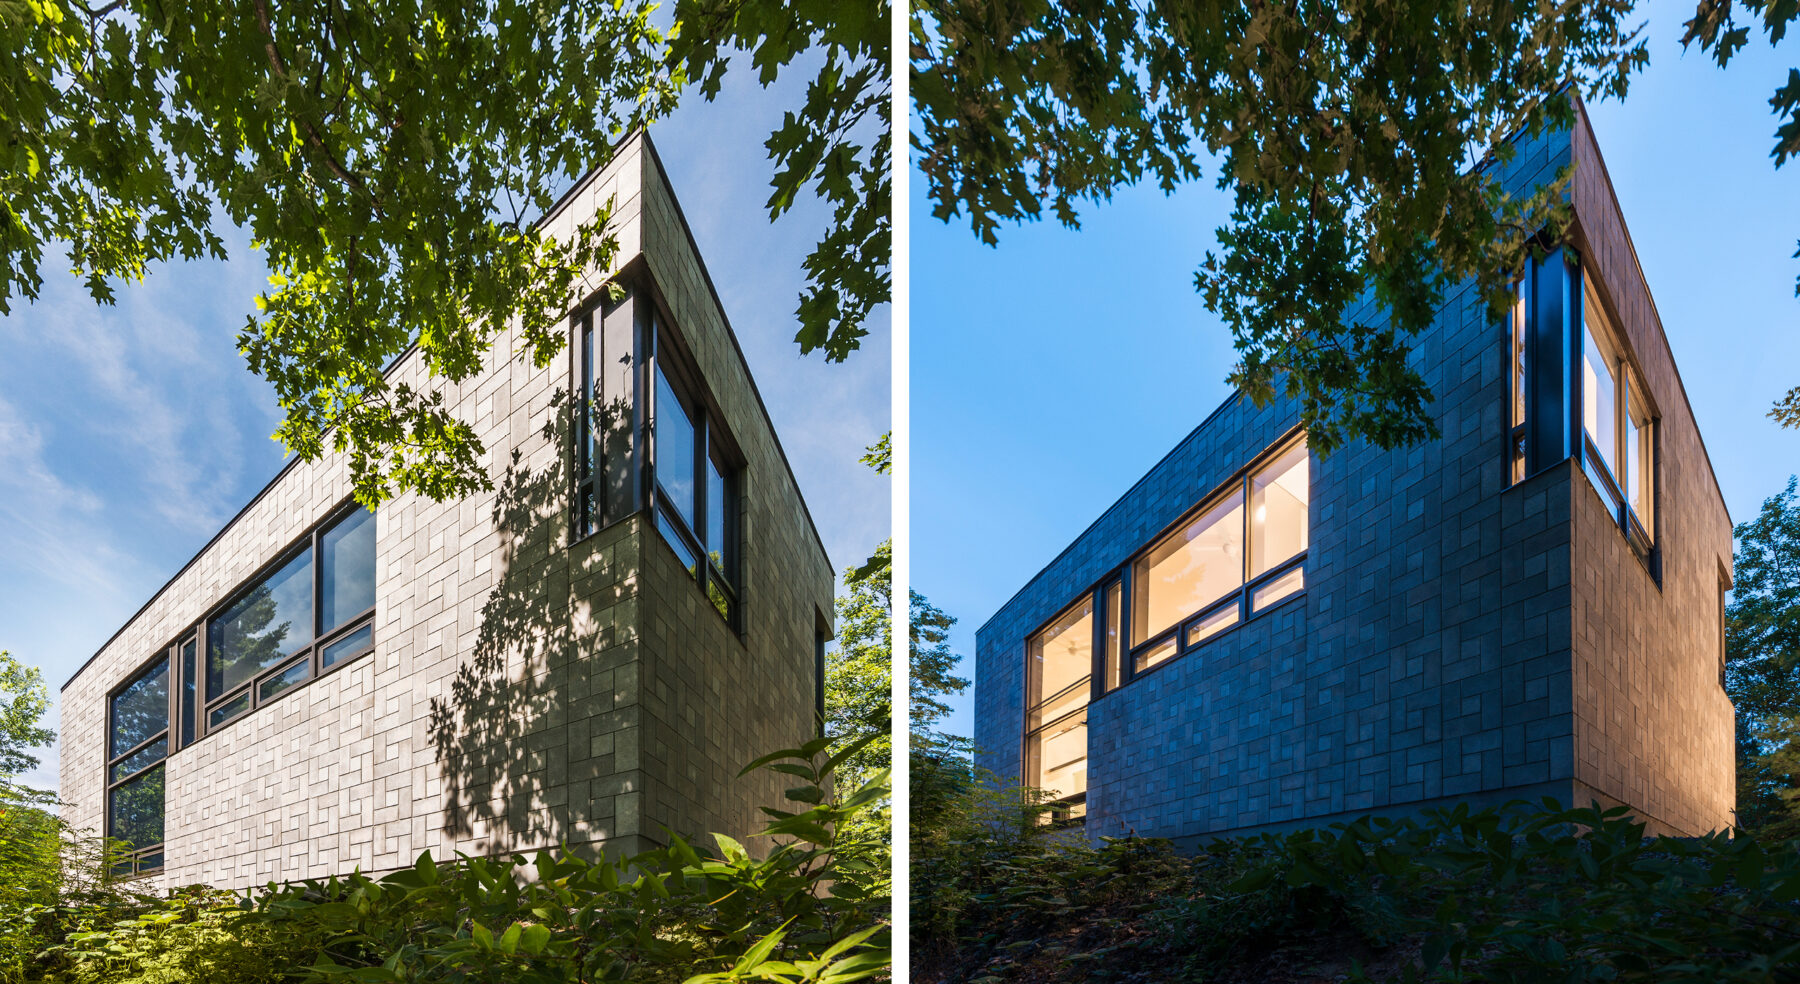 Exterior shot of Chelsea Hill House during daytime and nighttime